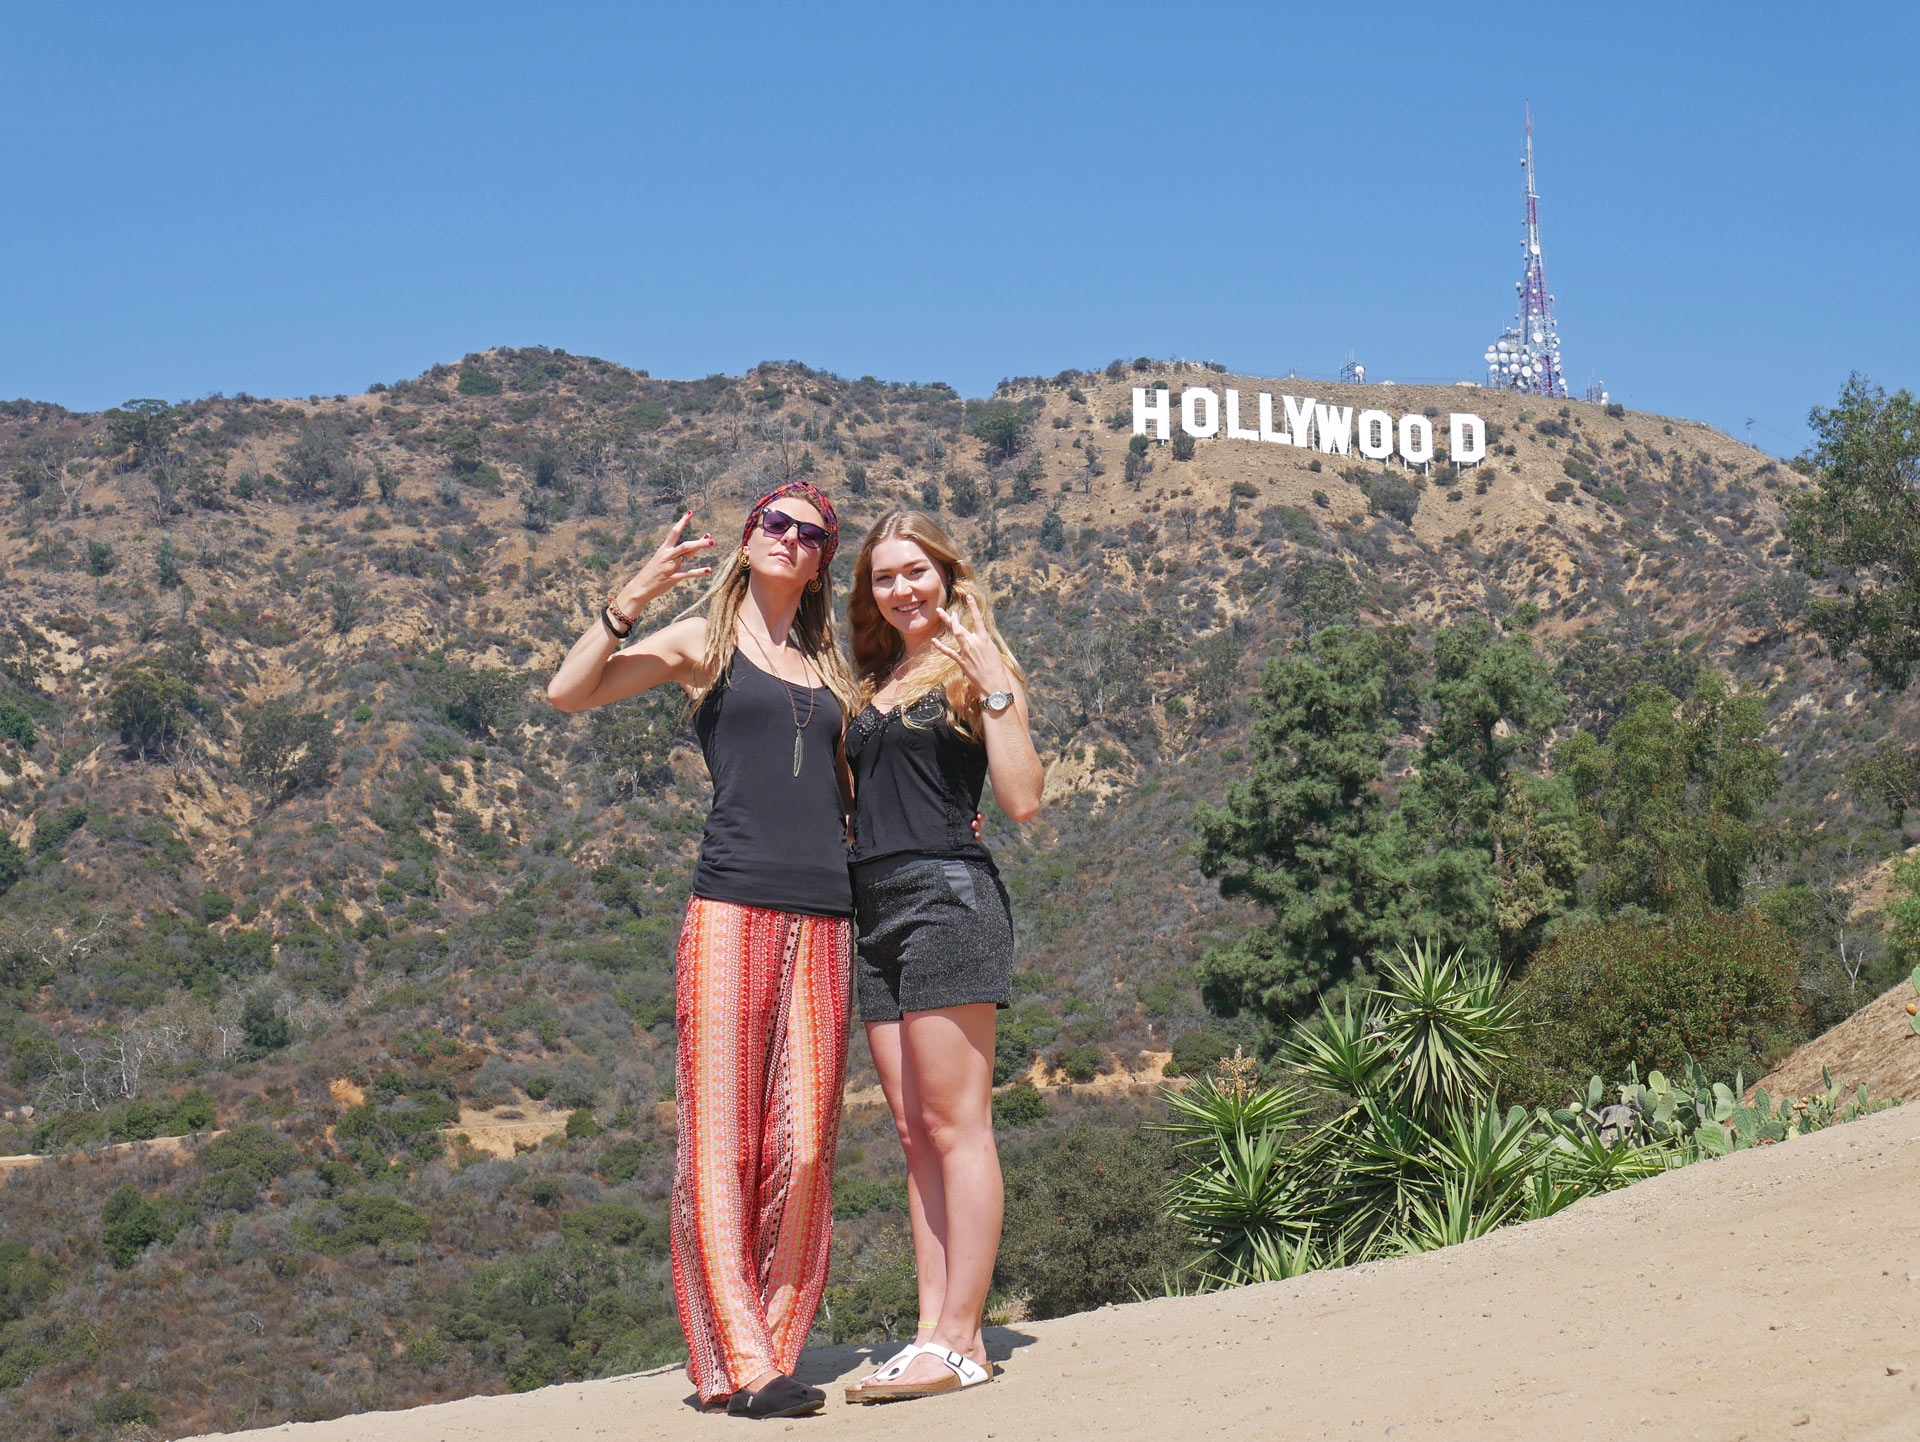 Sisters showing west side hand signs in front of Hollywood Sign in LA, CA